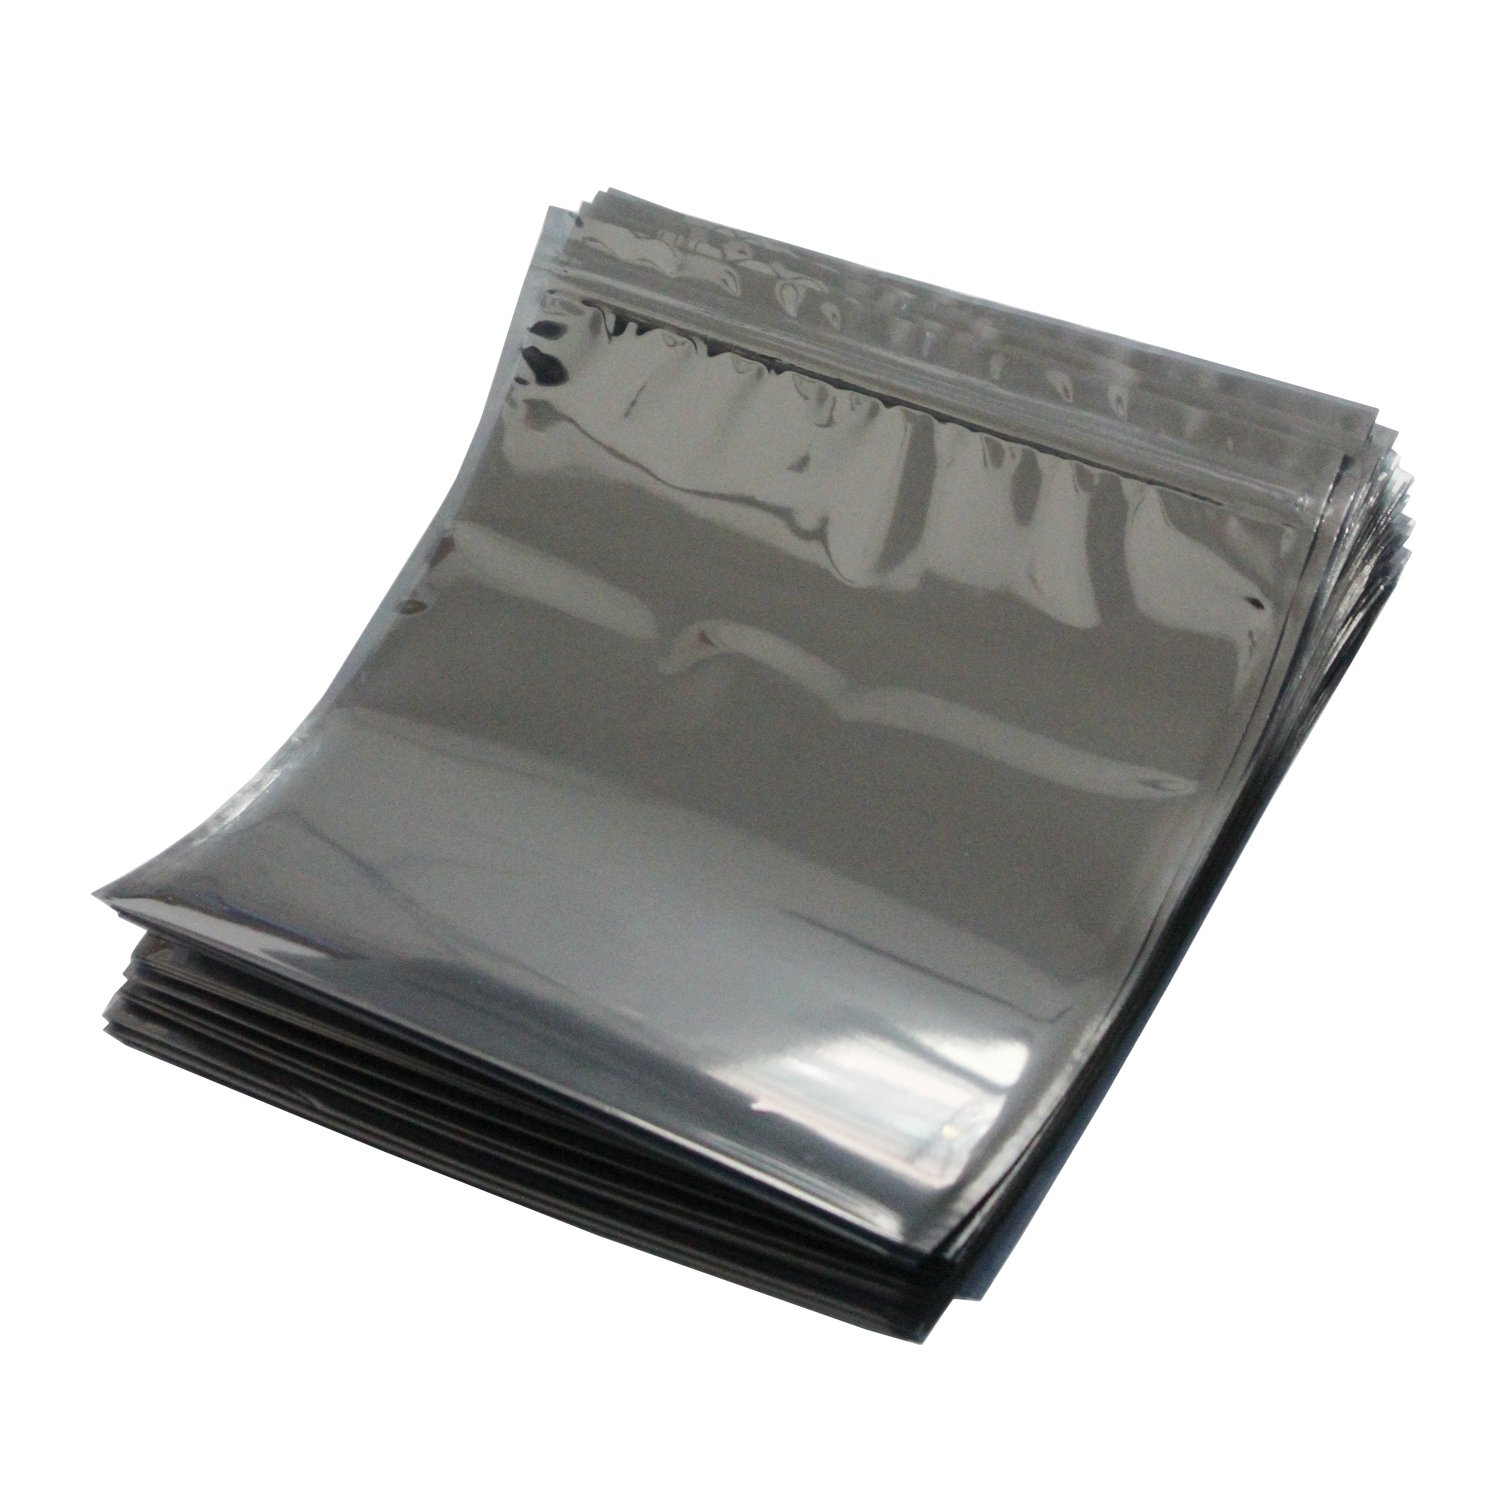 LJY 50 Pieces Antistatic Resealable Large Size Bags for Motherboard HDD and Electronic Device, 21cm x 24cm / 8.3in x 9.5in by LJY (Image #1)